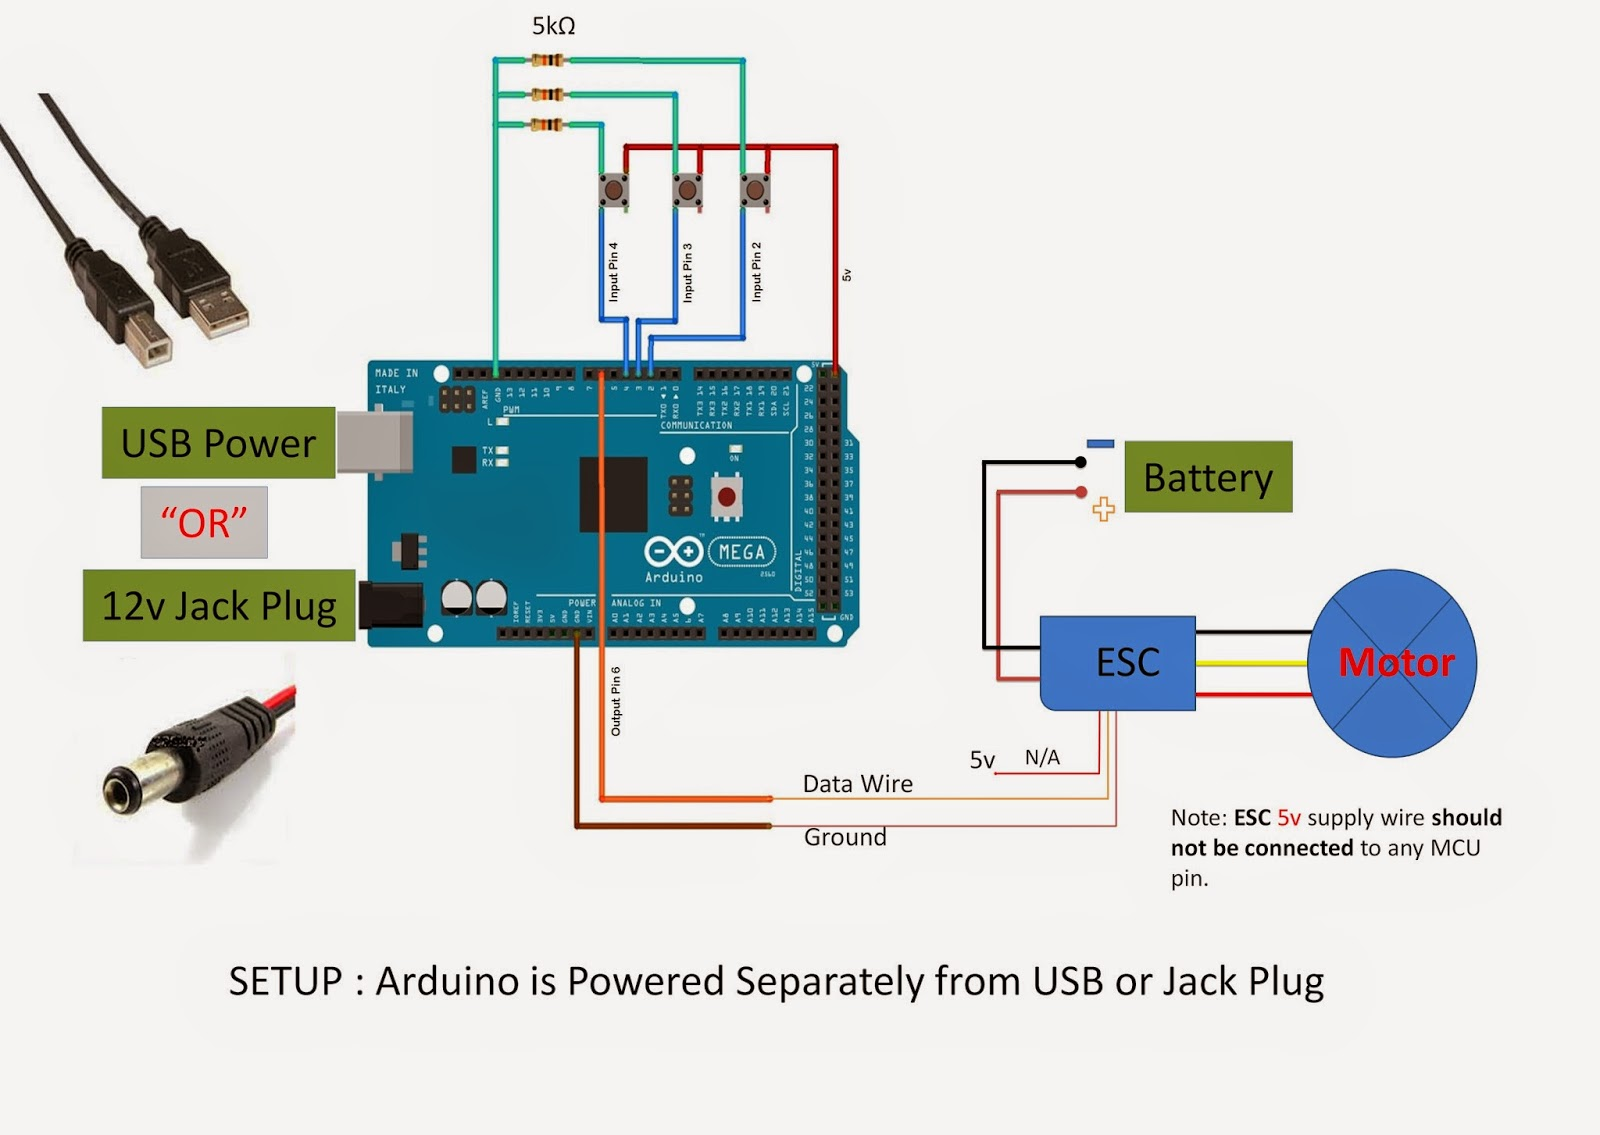 Diy Arduino Brushless Dc Motor Controller Control Schematic Diagram Ku63 Bldc Using Sketch Mega 2560 D I Y With Esc And